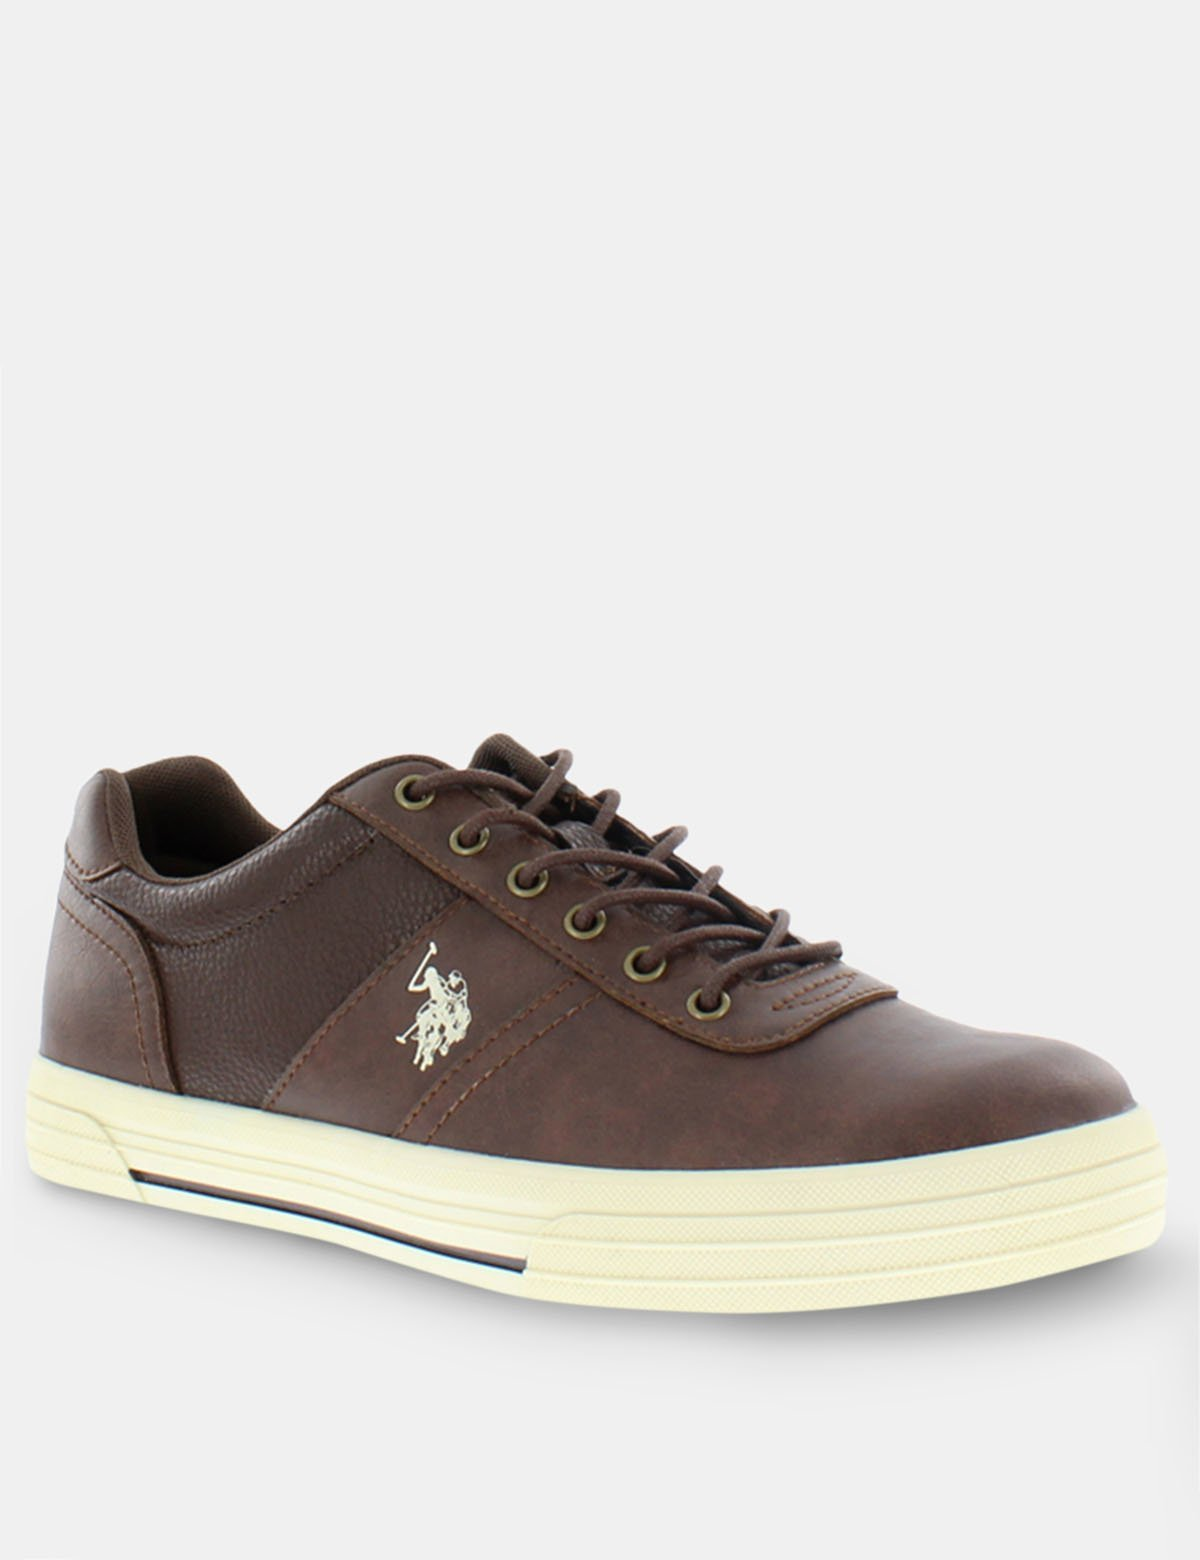 Boys Helm Sneaker - U.S. Polo Assn.